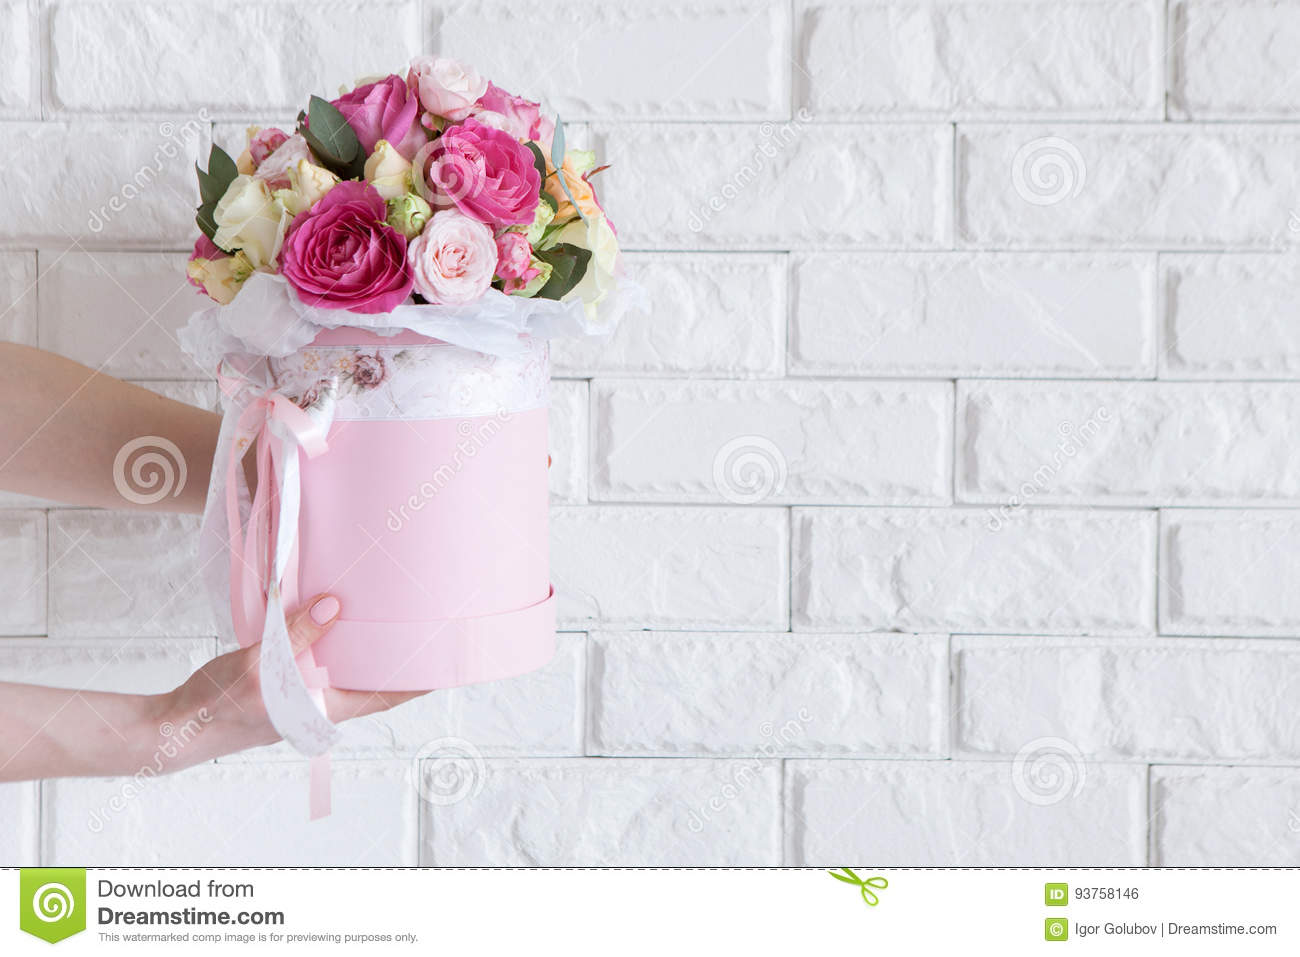 Hand Gives Bunch With Pink Roses On White Stock Photo - Image of ...